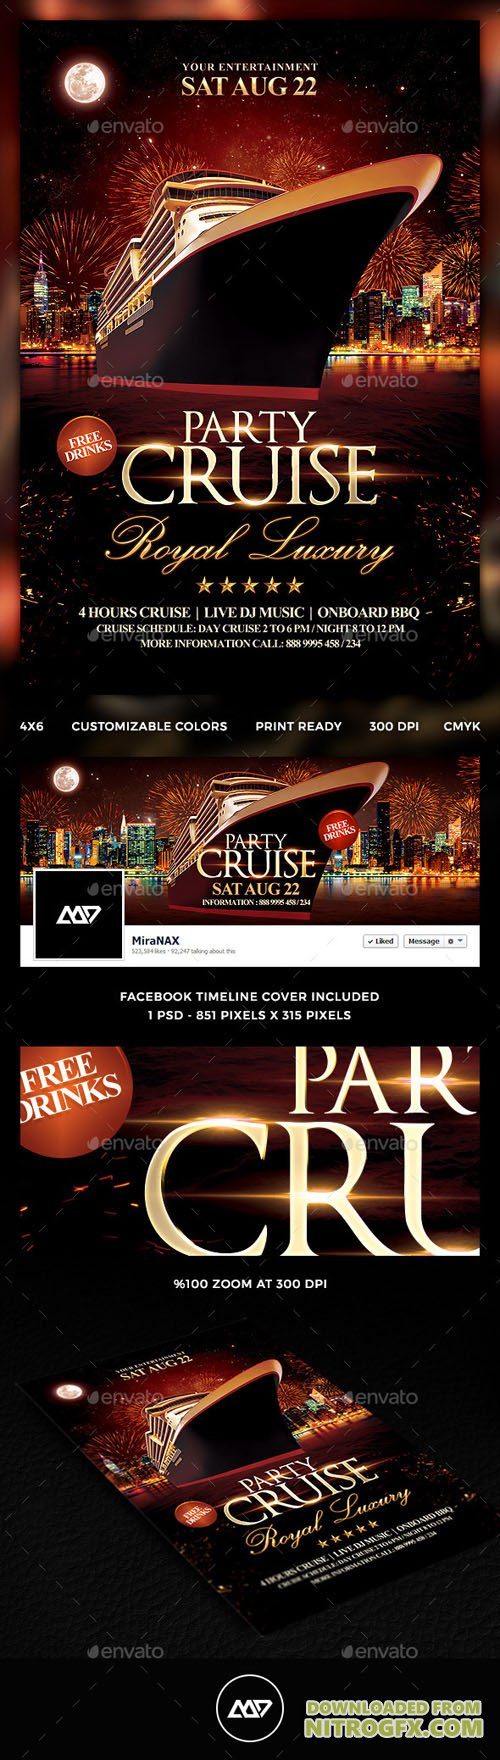 Cruise Party Flyer Template 12121840